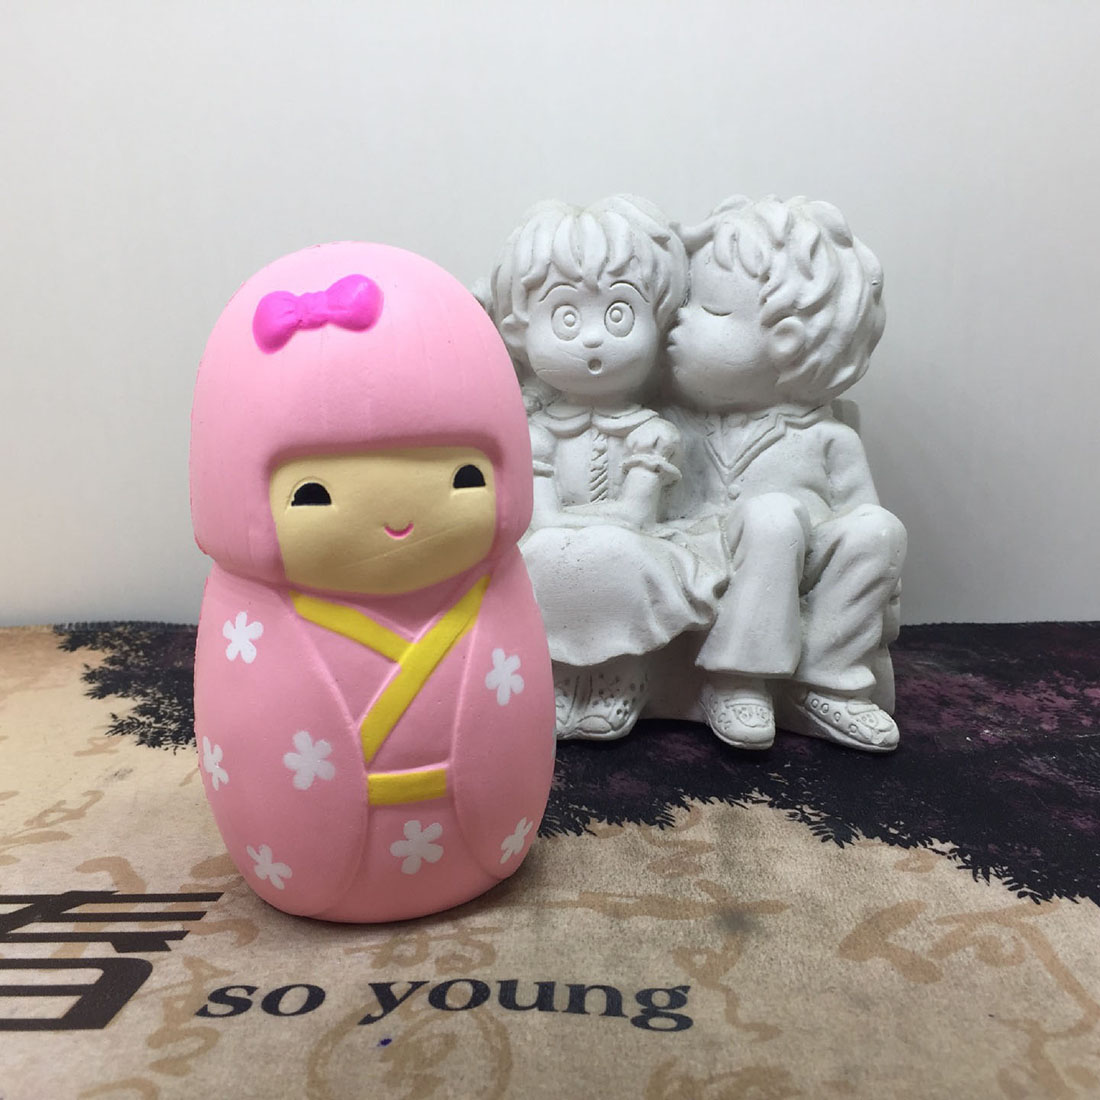 11.5 CM Cute Cartoon Japan Girl Stress Relief Toys Squishy Slow Rising Soft Squeeze Phone Straps Kid Fun Party Toys Gift